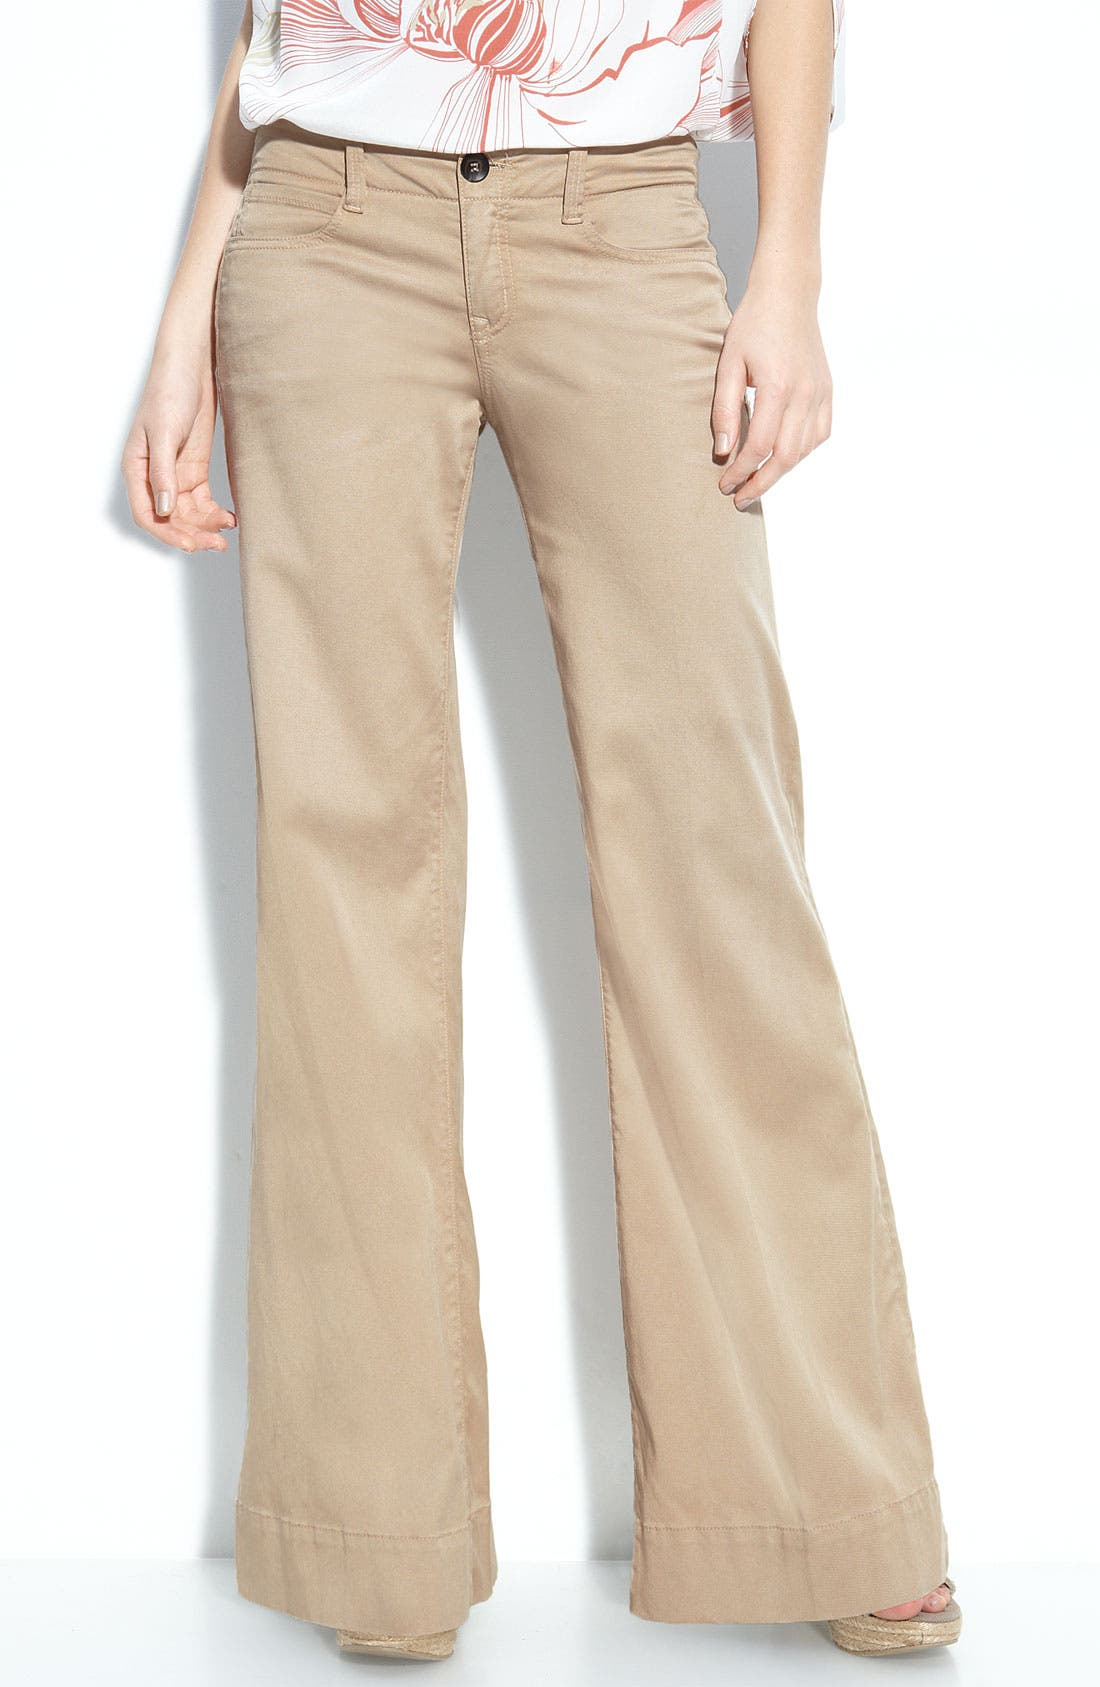 Alternate Image 1 Selected - Level 99 'Storm' Wide Leg Pants